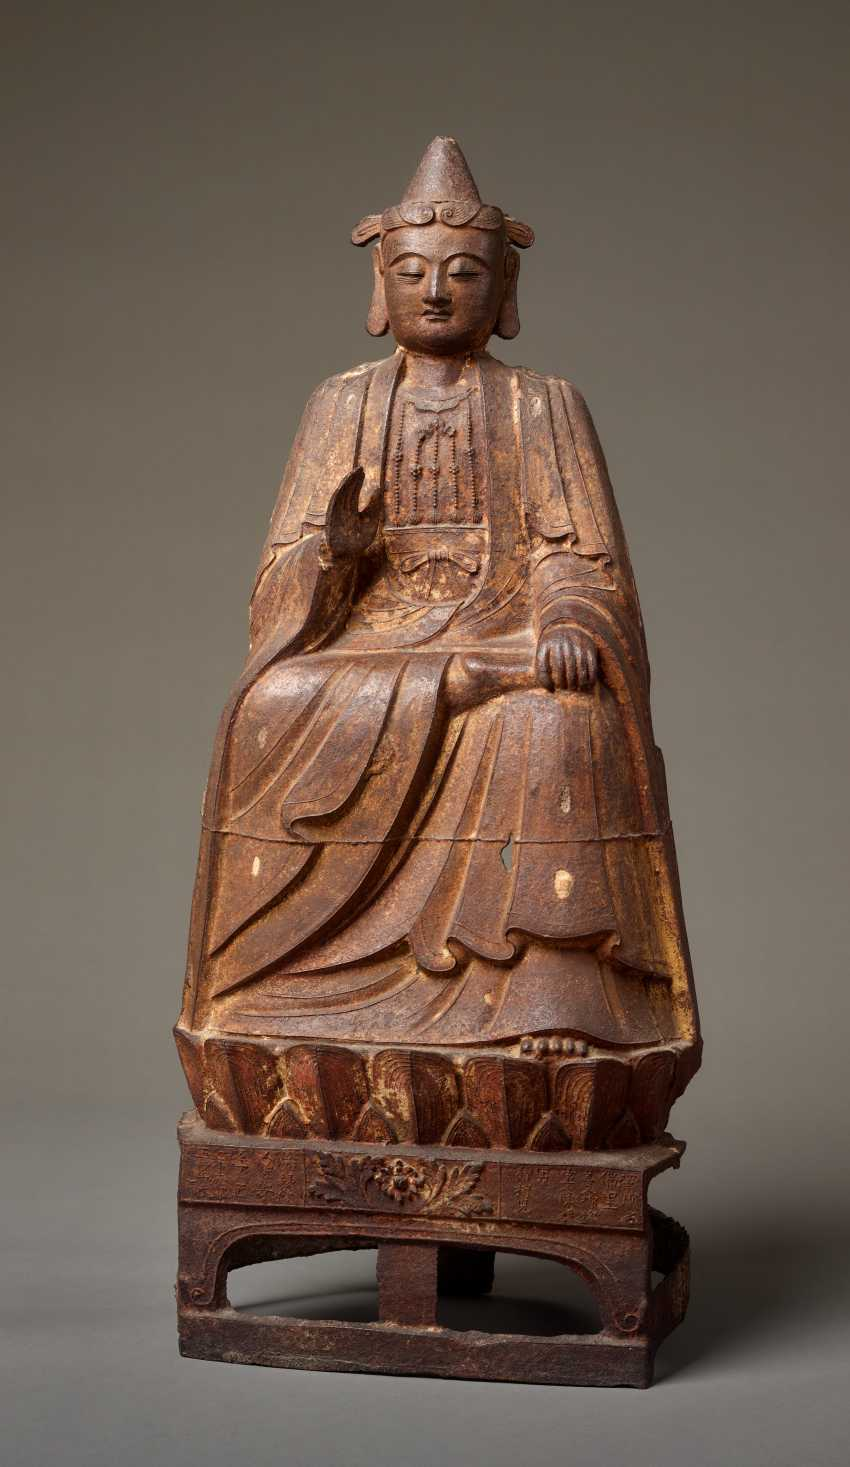 LARGE MUSEUM-LIKE IRON SCULPTURE OF AN ENTHRONED BODHISATTVA DATING TO 1521